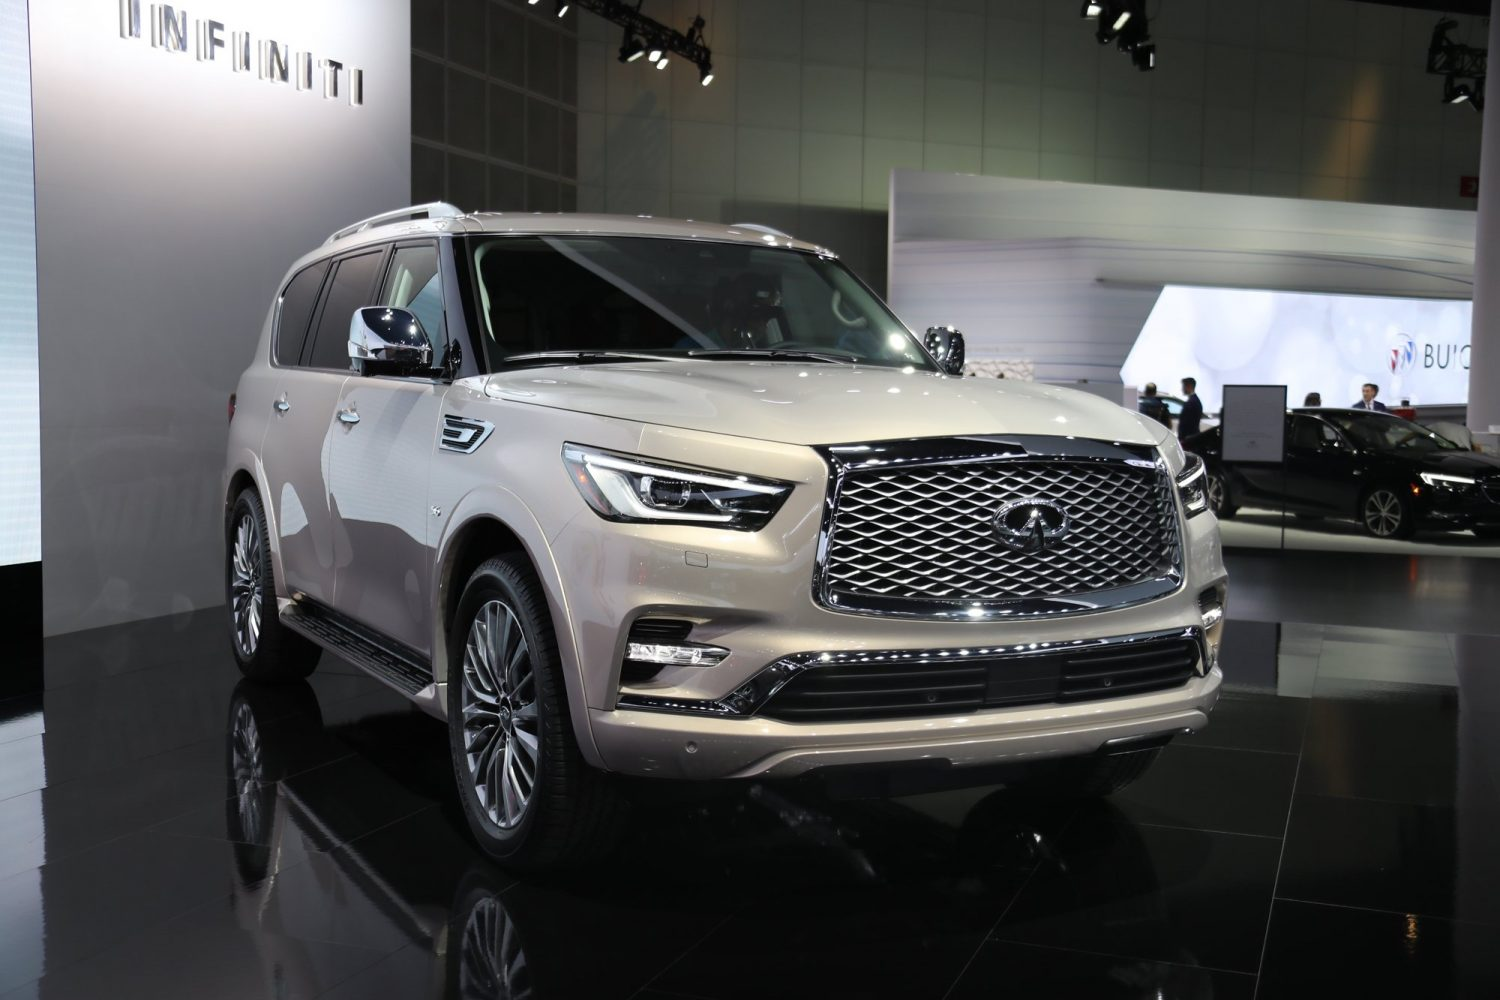 the 2019 infiniti qx60 and qx80 unveiled during new york auto show news articles motorists. Black Bedroom Furniture Sets. Home Design Ideas